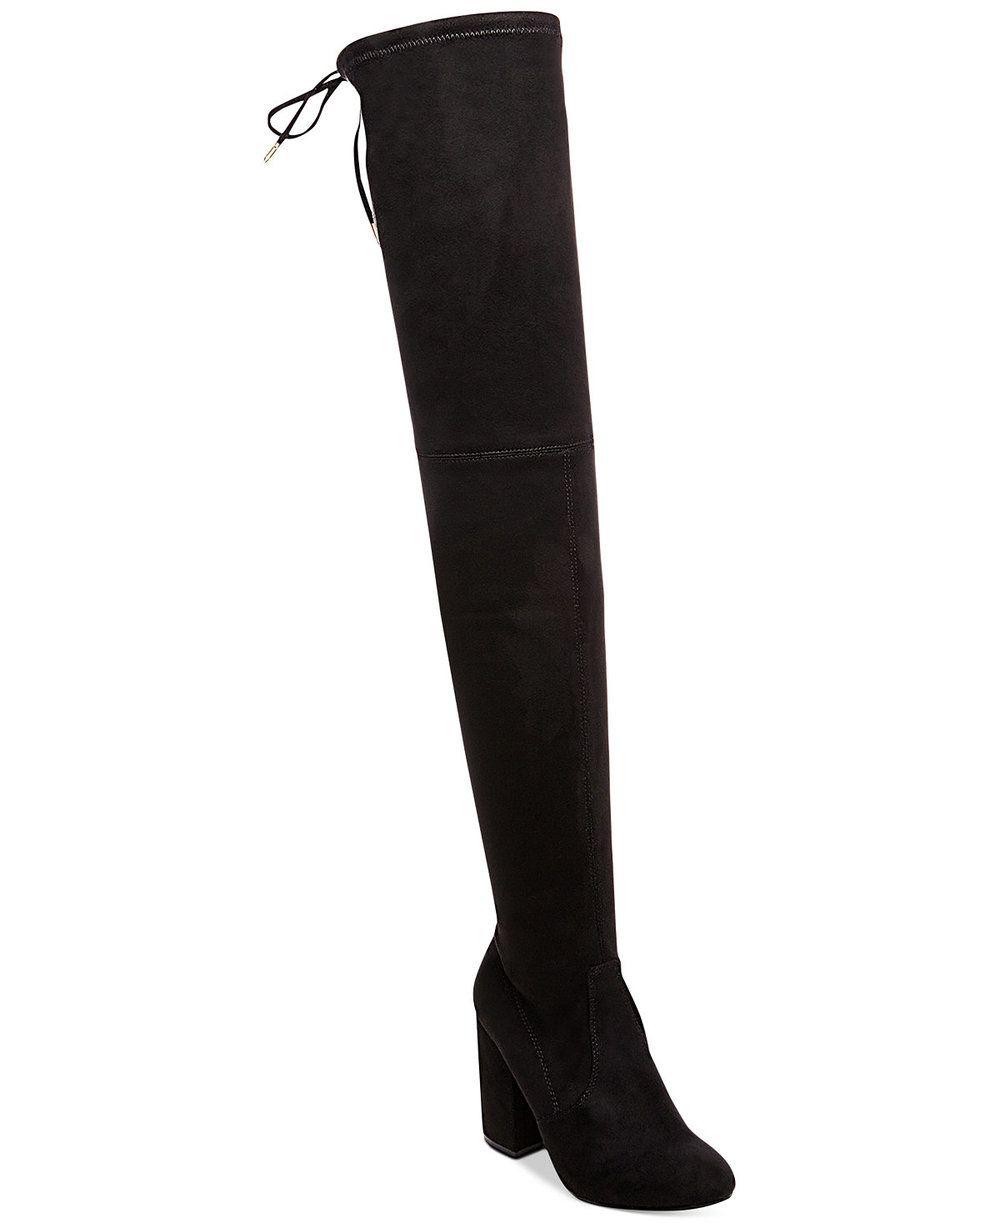 Steve Madden Women's Norri Over-The-Knee Boots